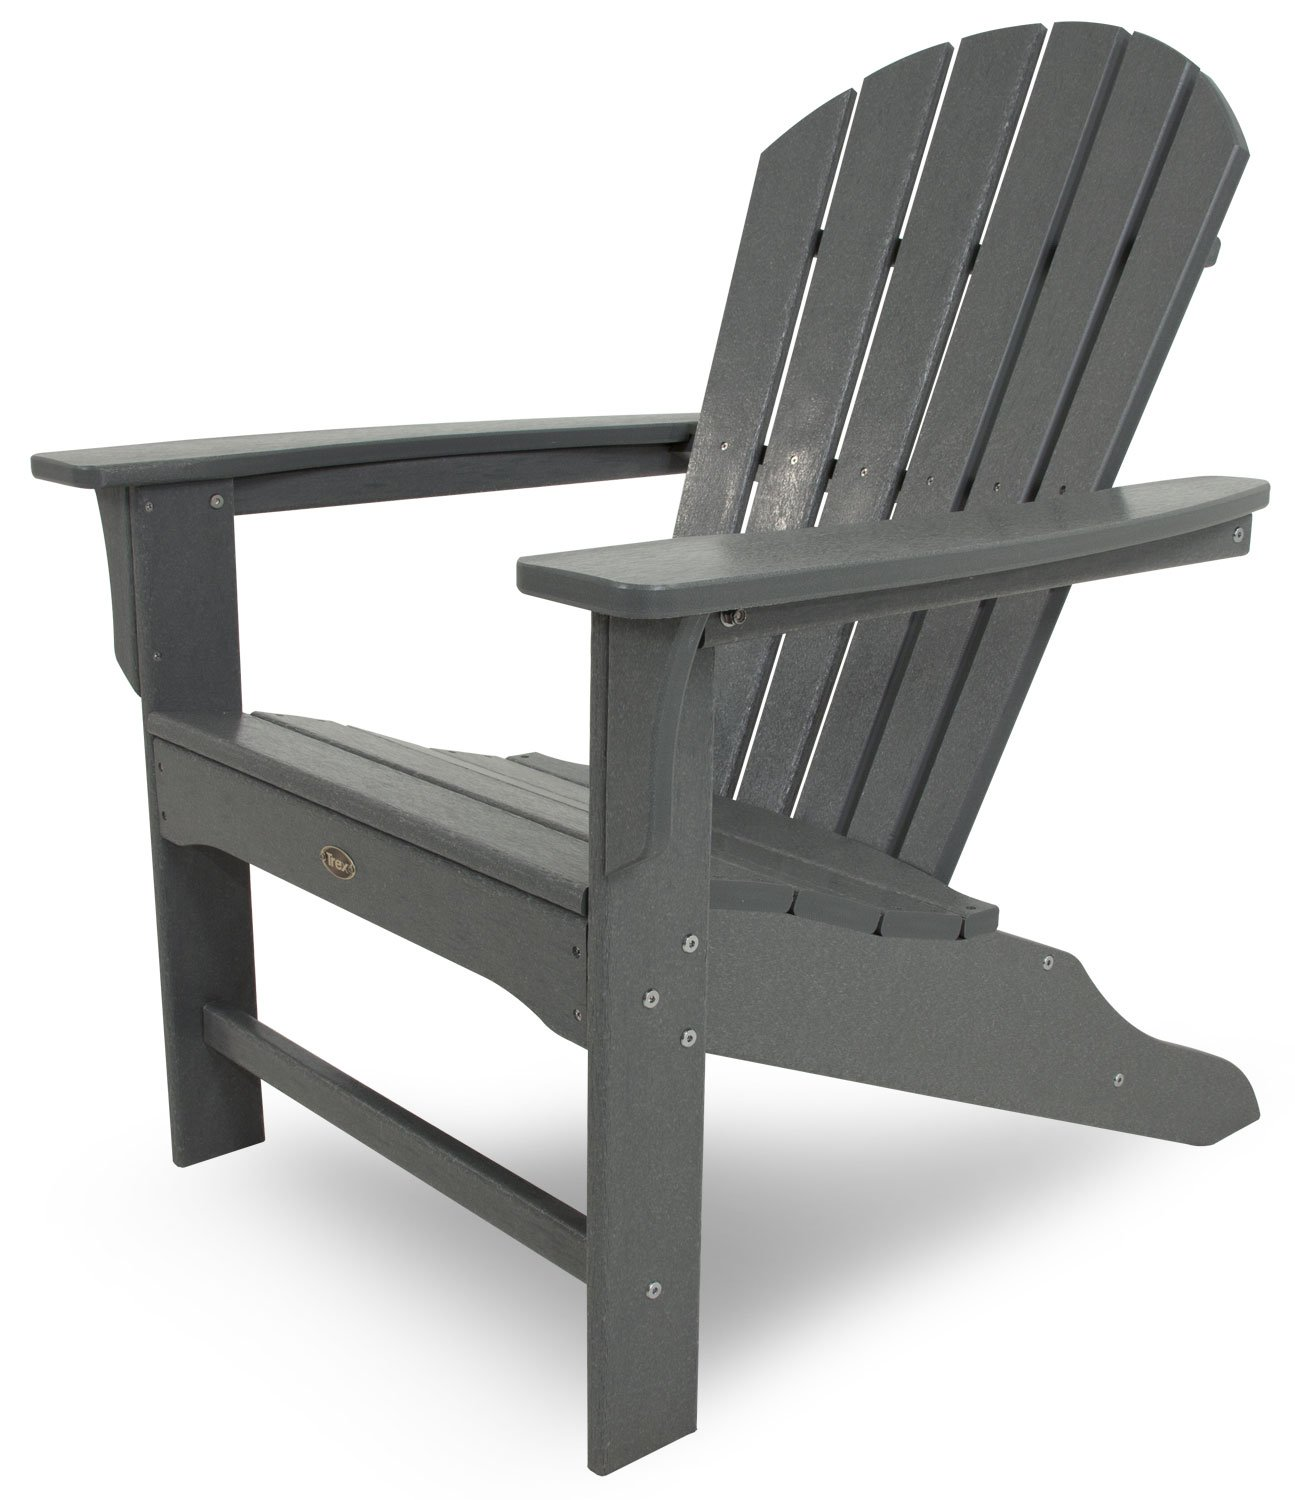 Trex Outdoor Furniture Cape Cod Adirondack Chair, Stepping Stone Product  Image